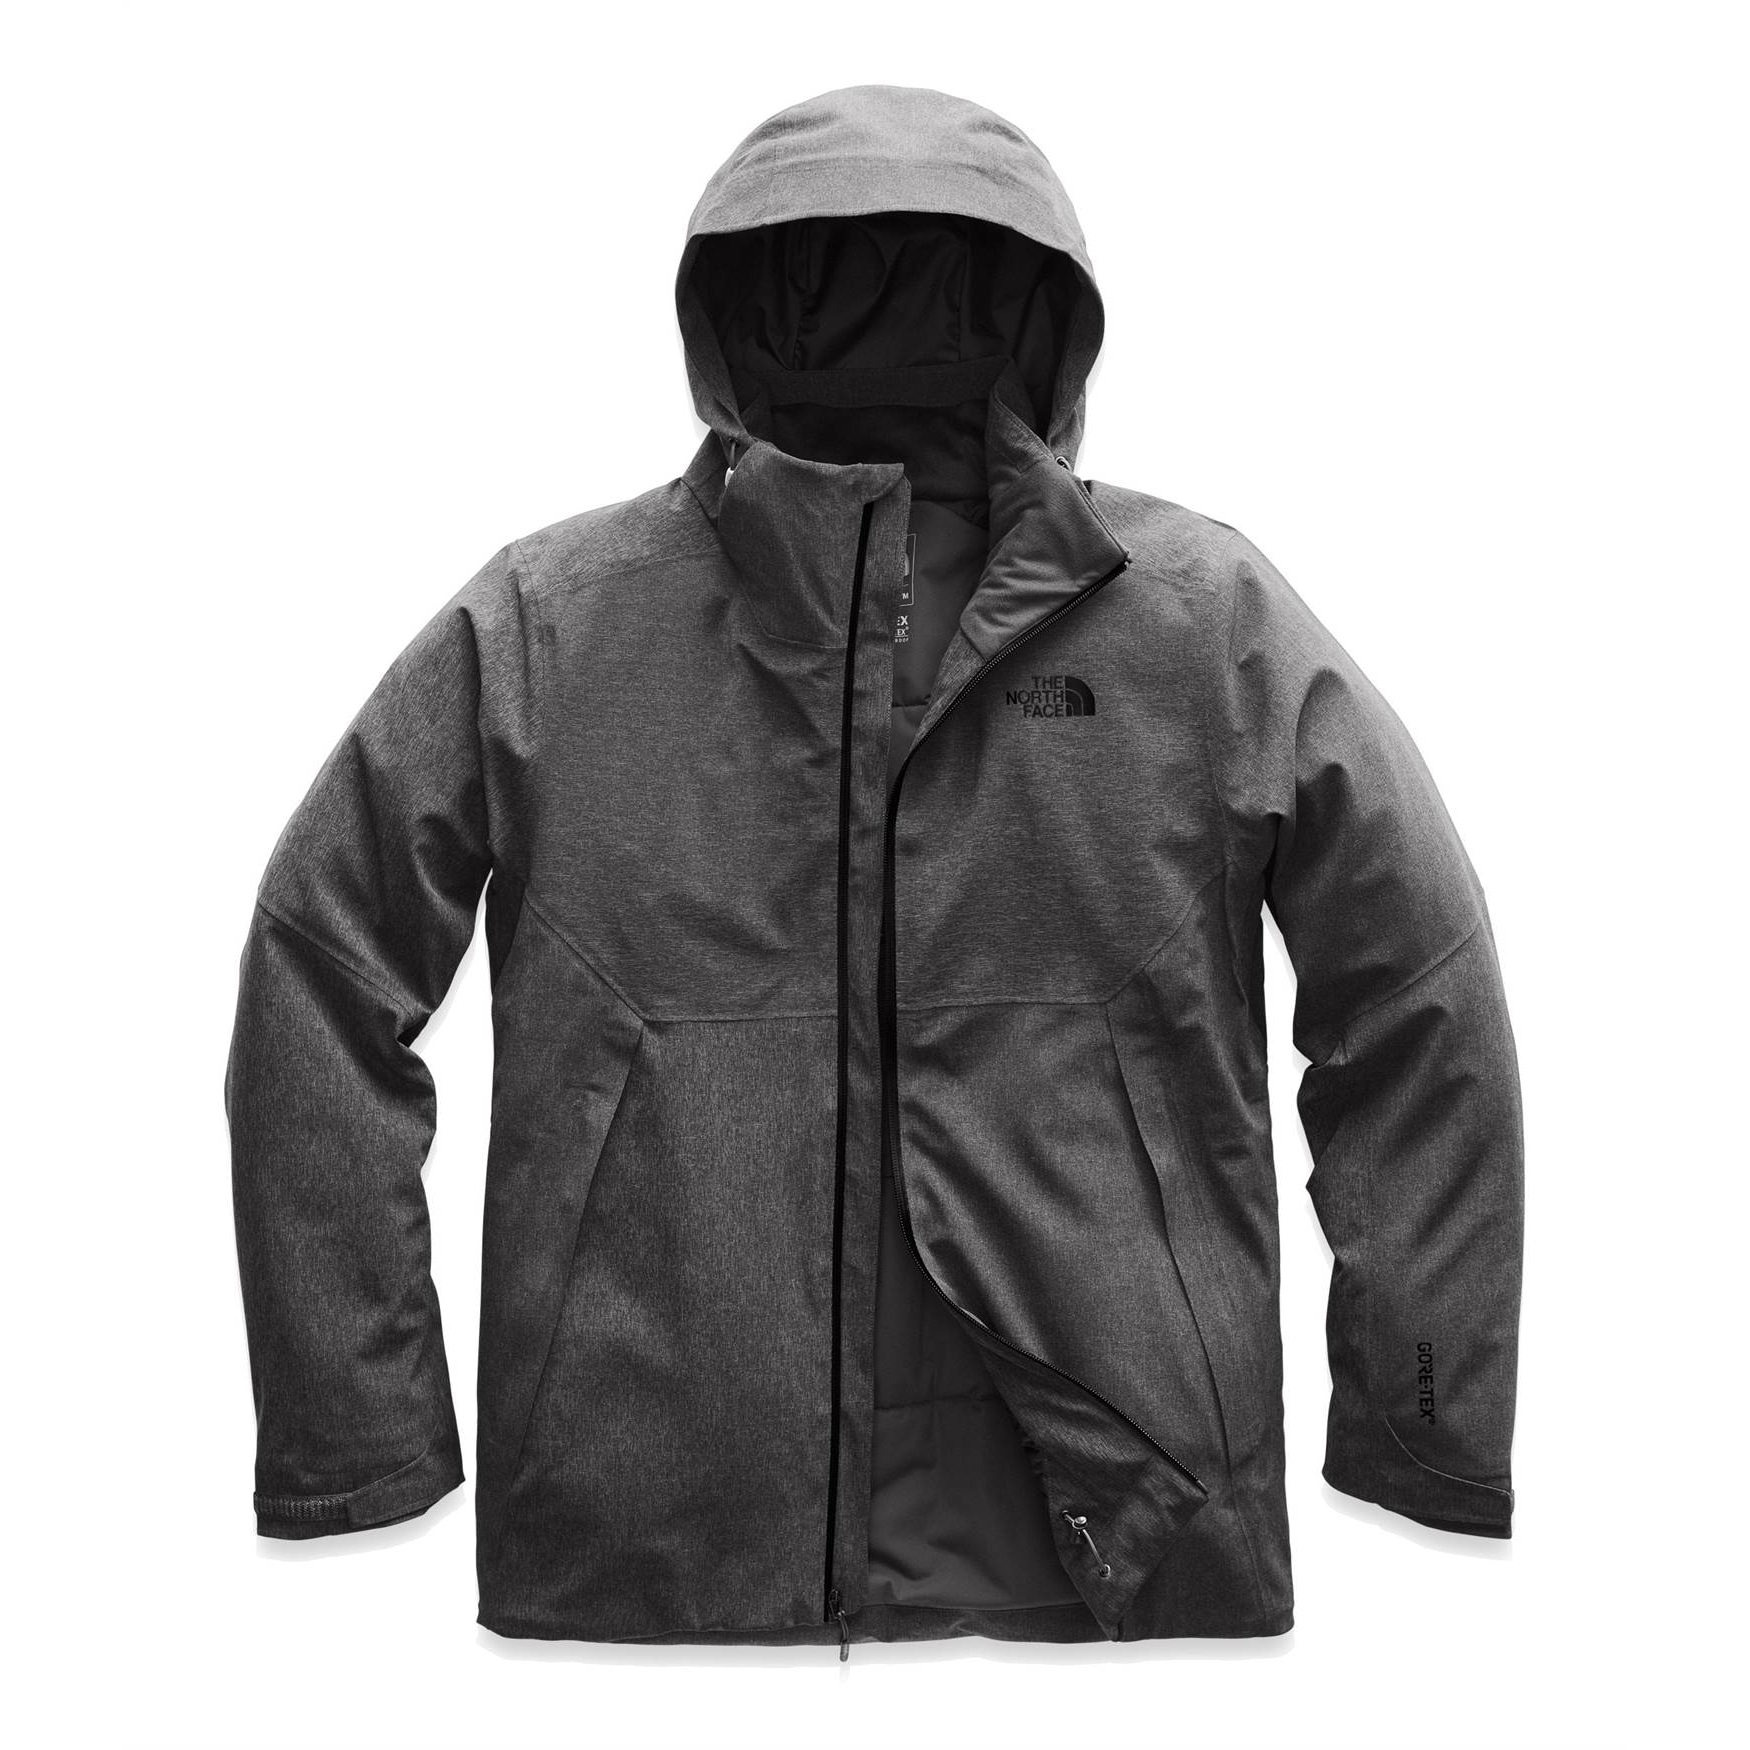 Apex Flex GTX Thermal Jacket - Men s - Soft-Shell Jackets - Jackets ... ed5f9b4b0